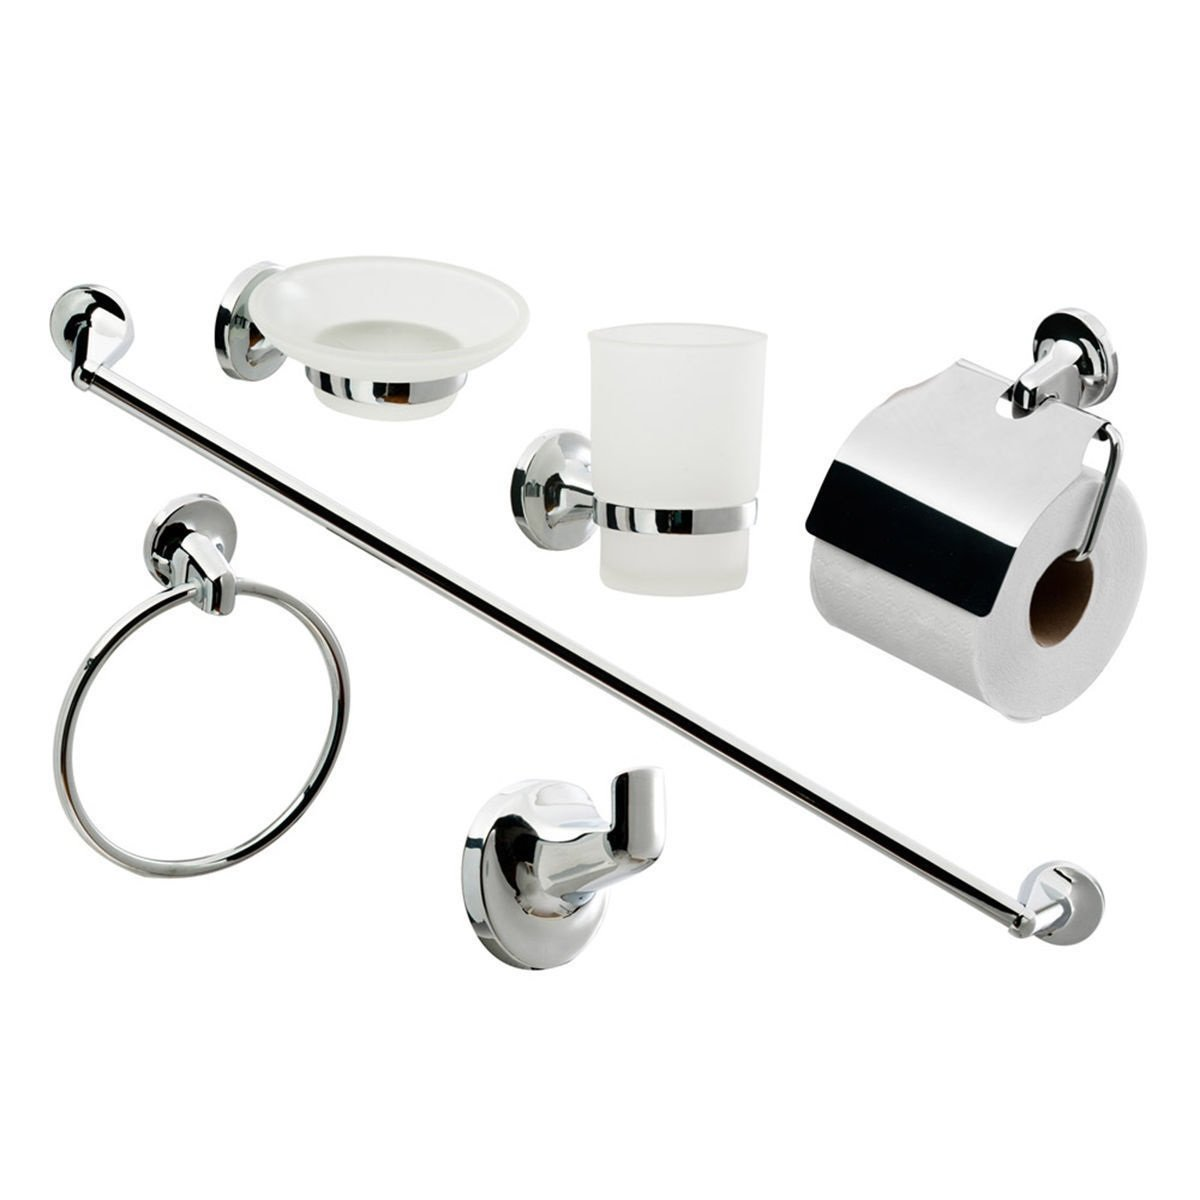 Bathroom Toilet Chrome 6 Piece Accessory Set Toilet Roll Holder Soap Dish Toothbrush Holder Towel Rail Robe Hook Casa